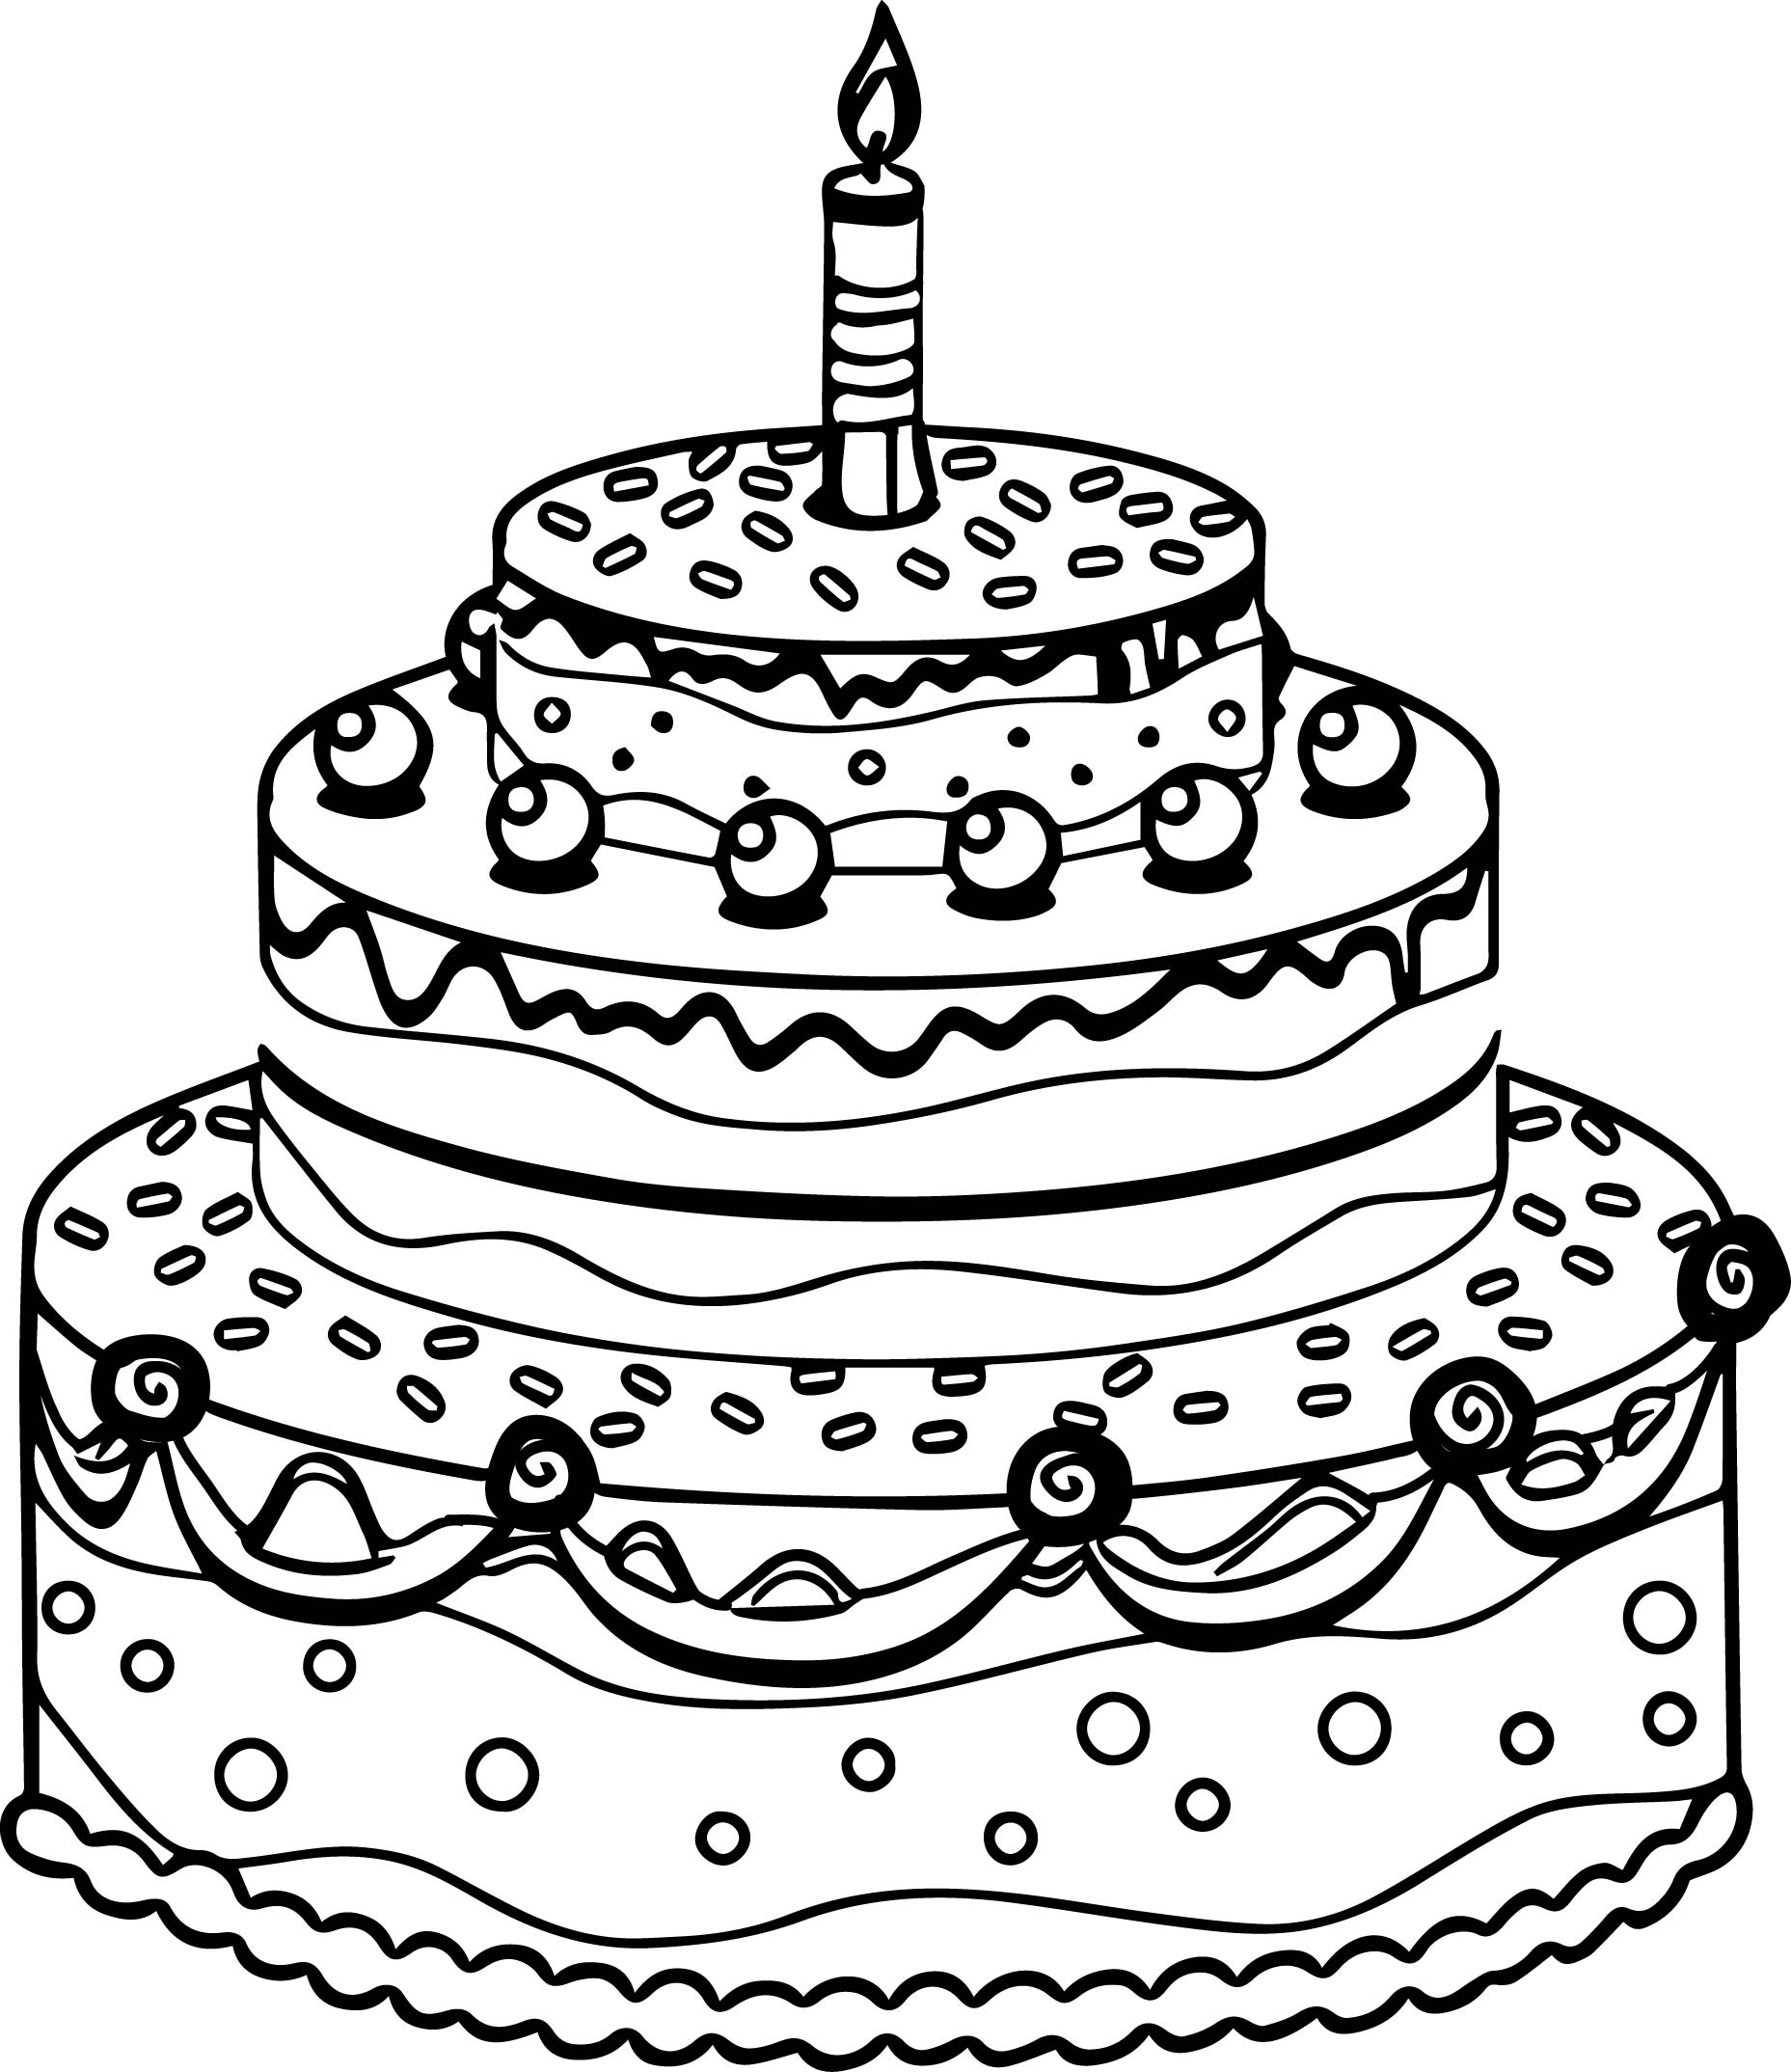 Free For Personal Use Birthday Cake Drawing Of Your